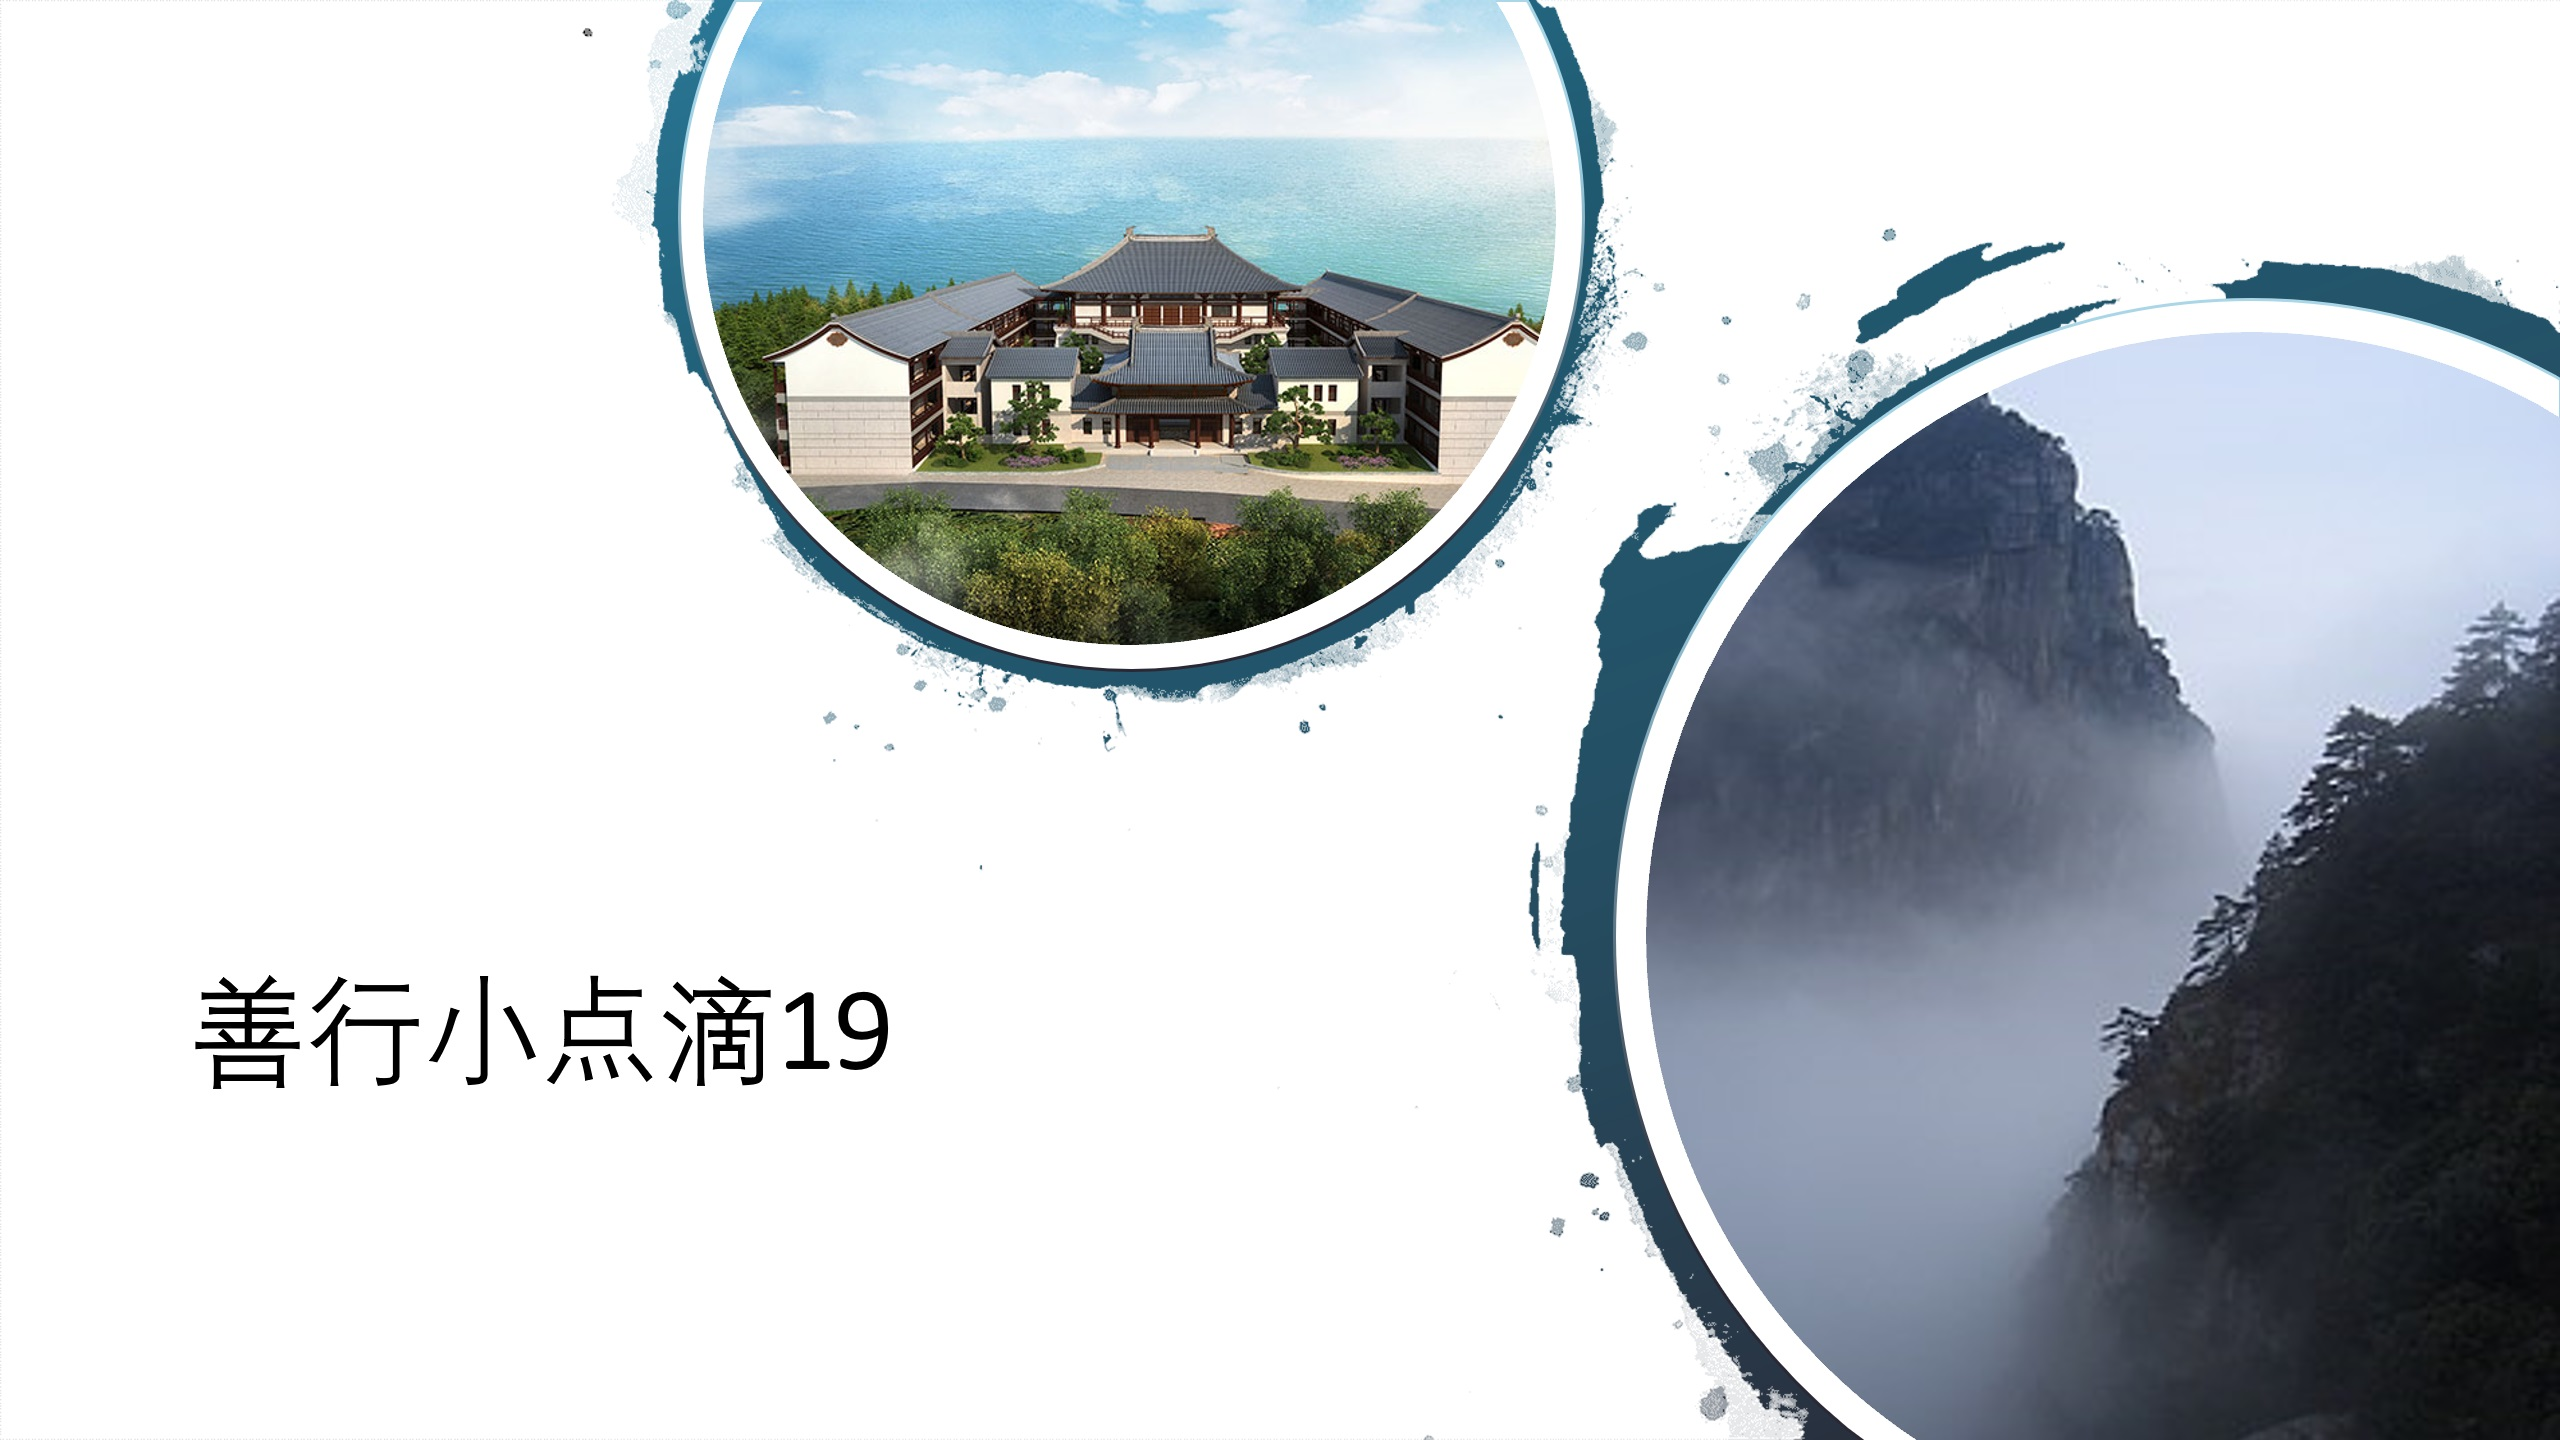 """VIRTUOUS ACT SHARING 19"" STAY HEALTHY STAY POSITIVE 38 善行小点滴分享 19 – 打包正能量 好好护健康  04.07.2020"